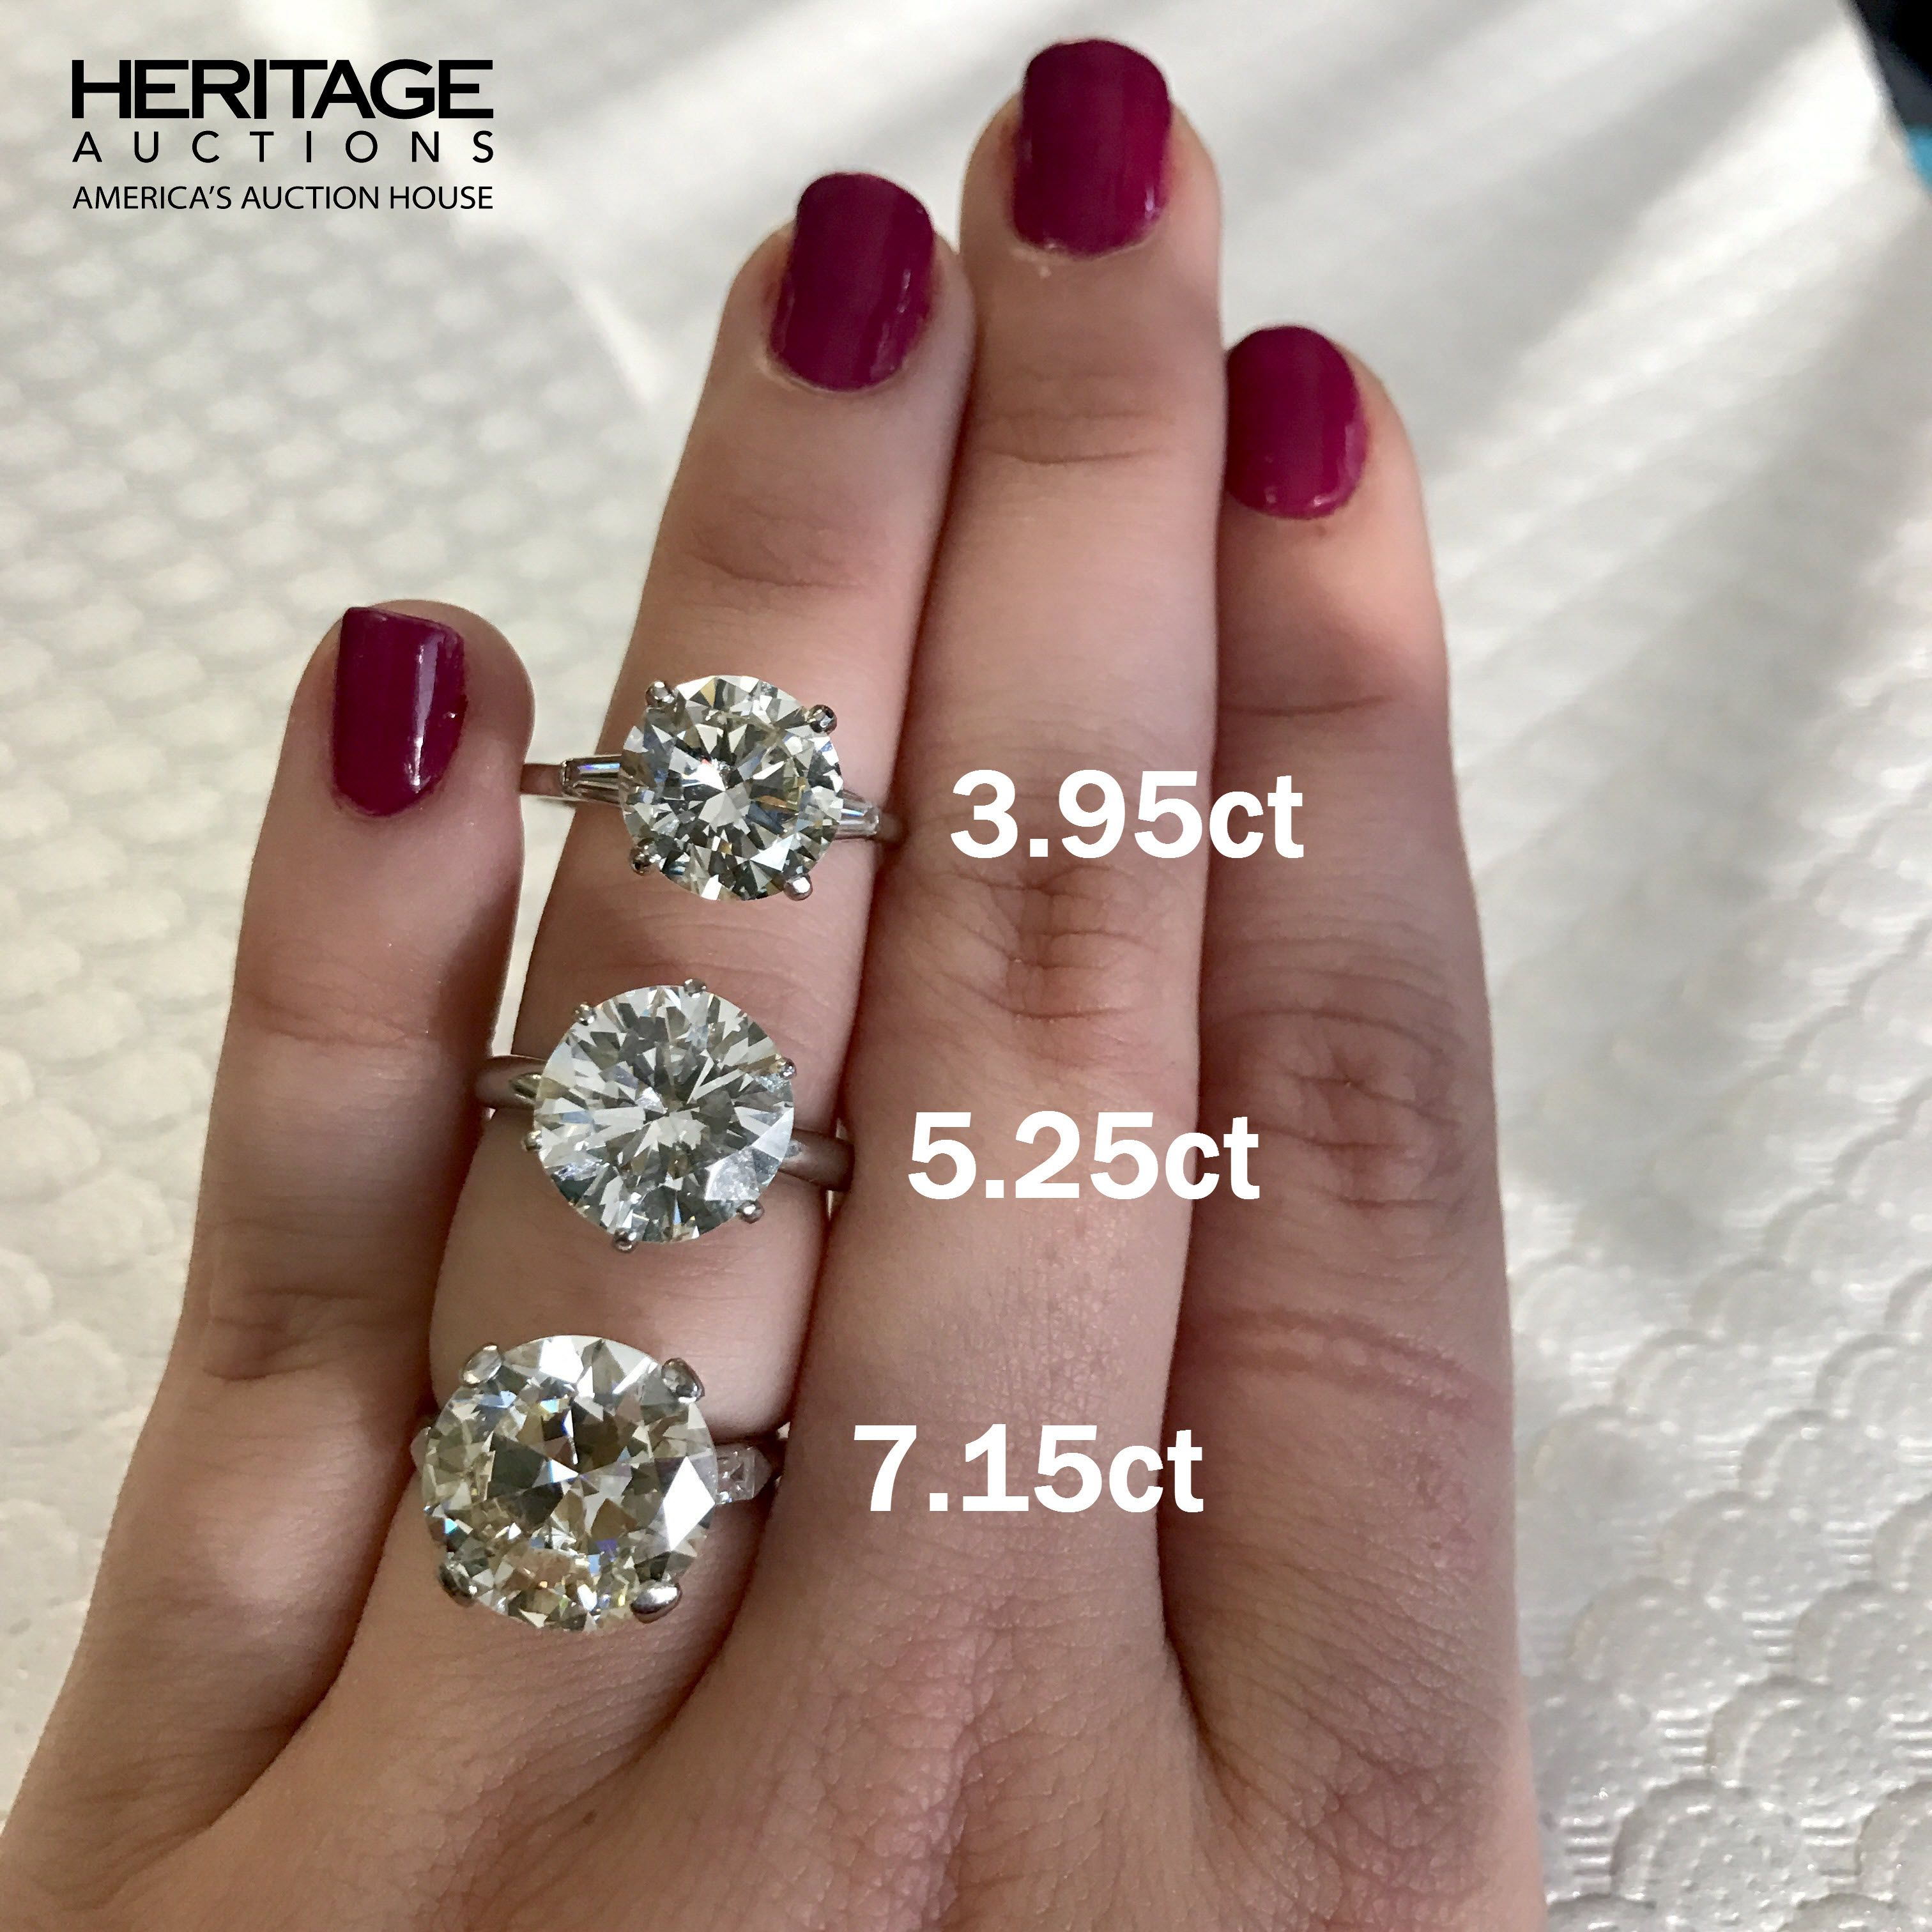 Round Cut Diamond Engagement Ring Carat Size Guide On Hand  3 Carat Round  Cut,